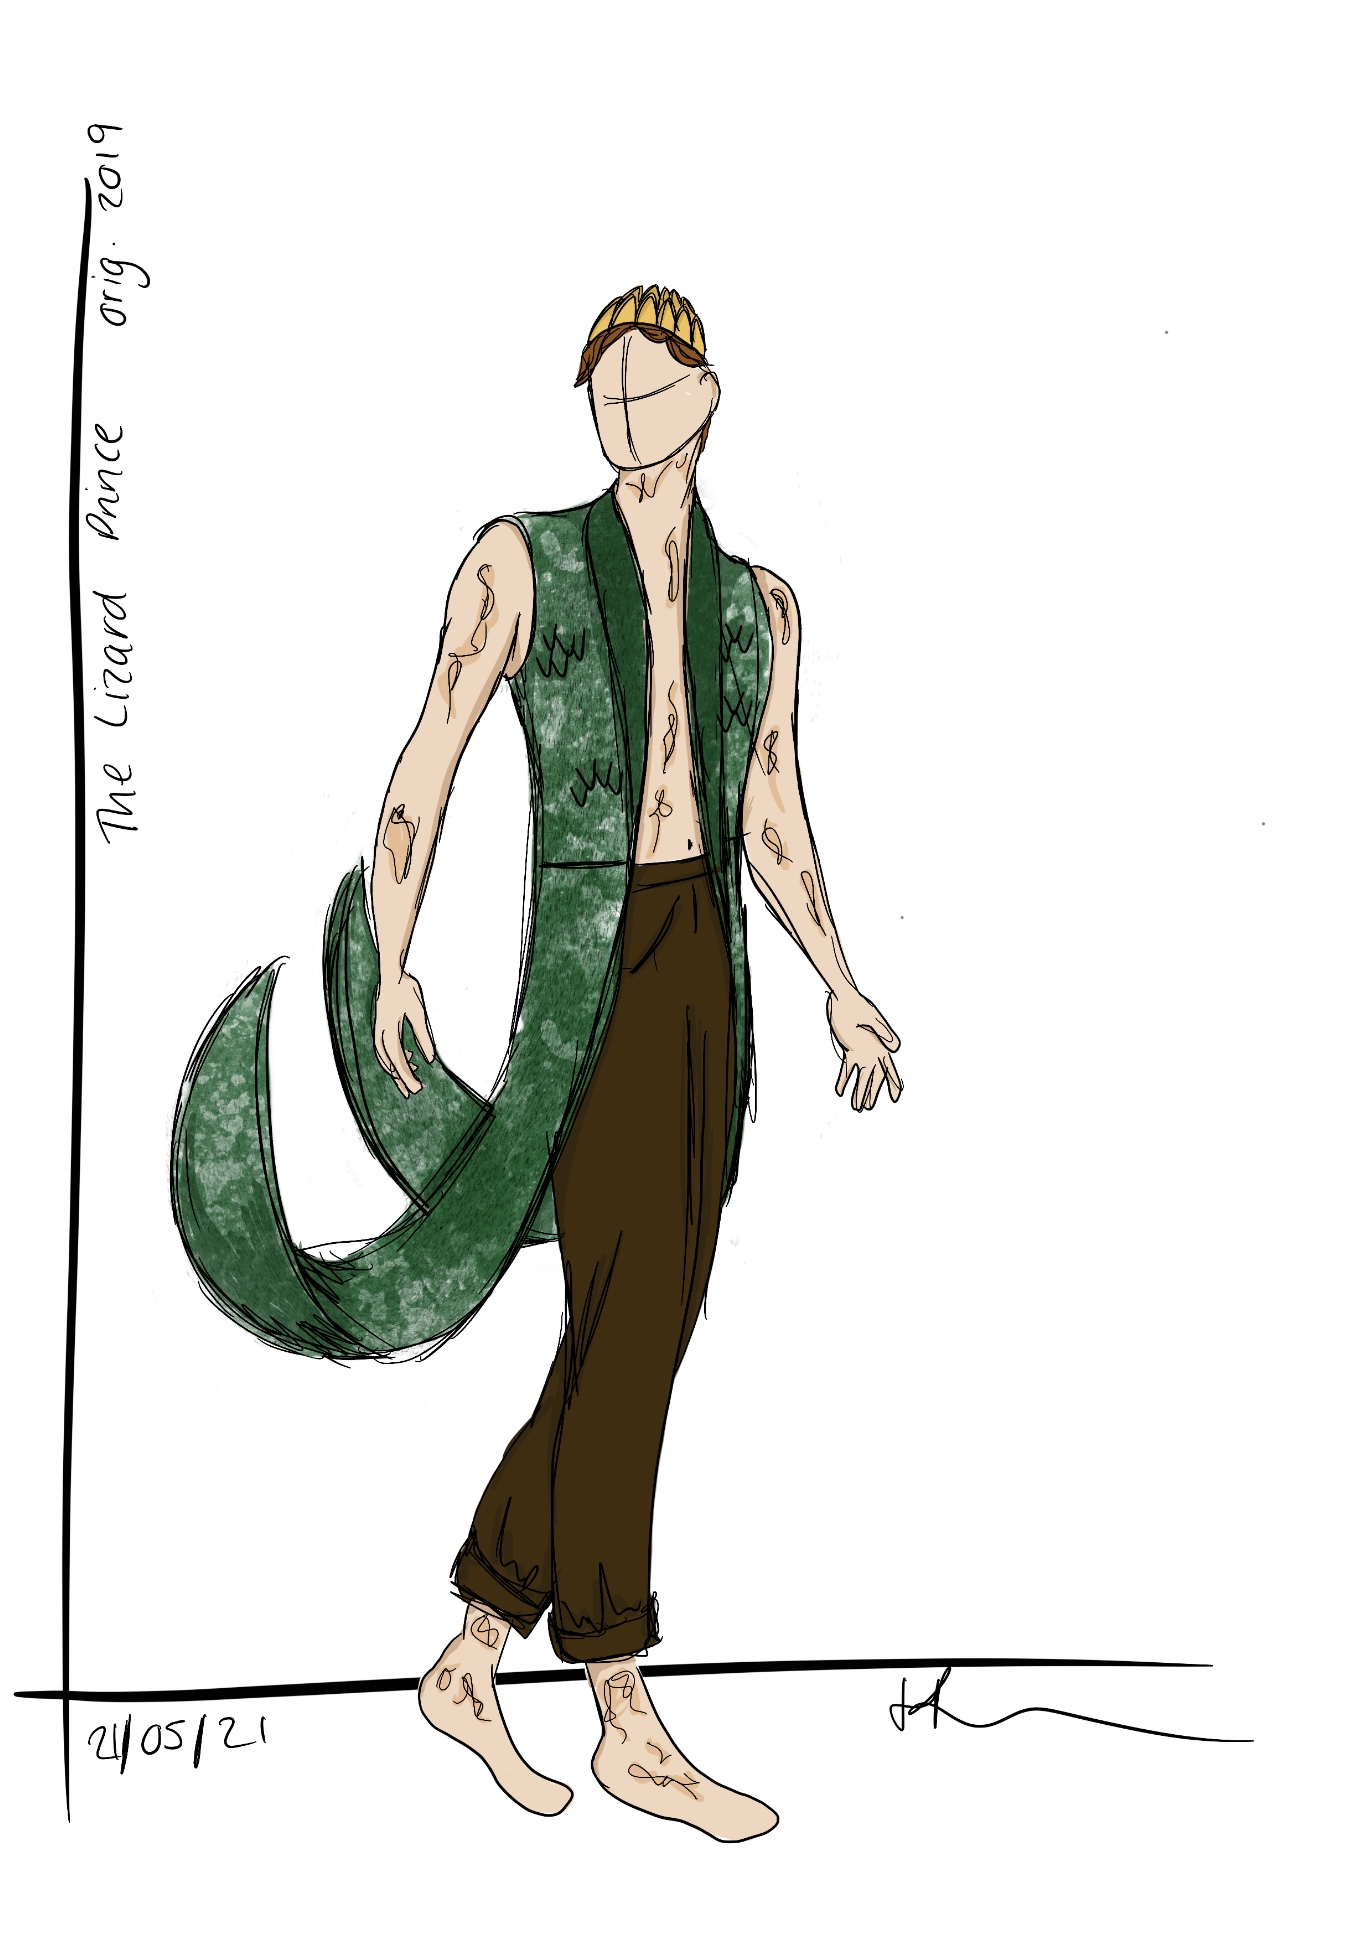 Design for 'The Lizard Prince' from the Carnal of Curiosities